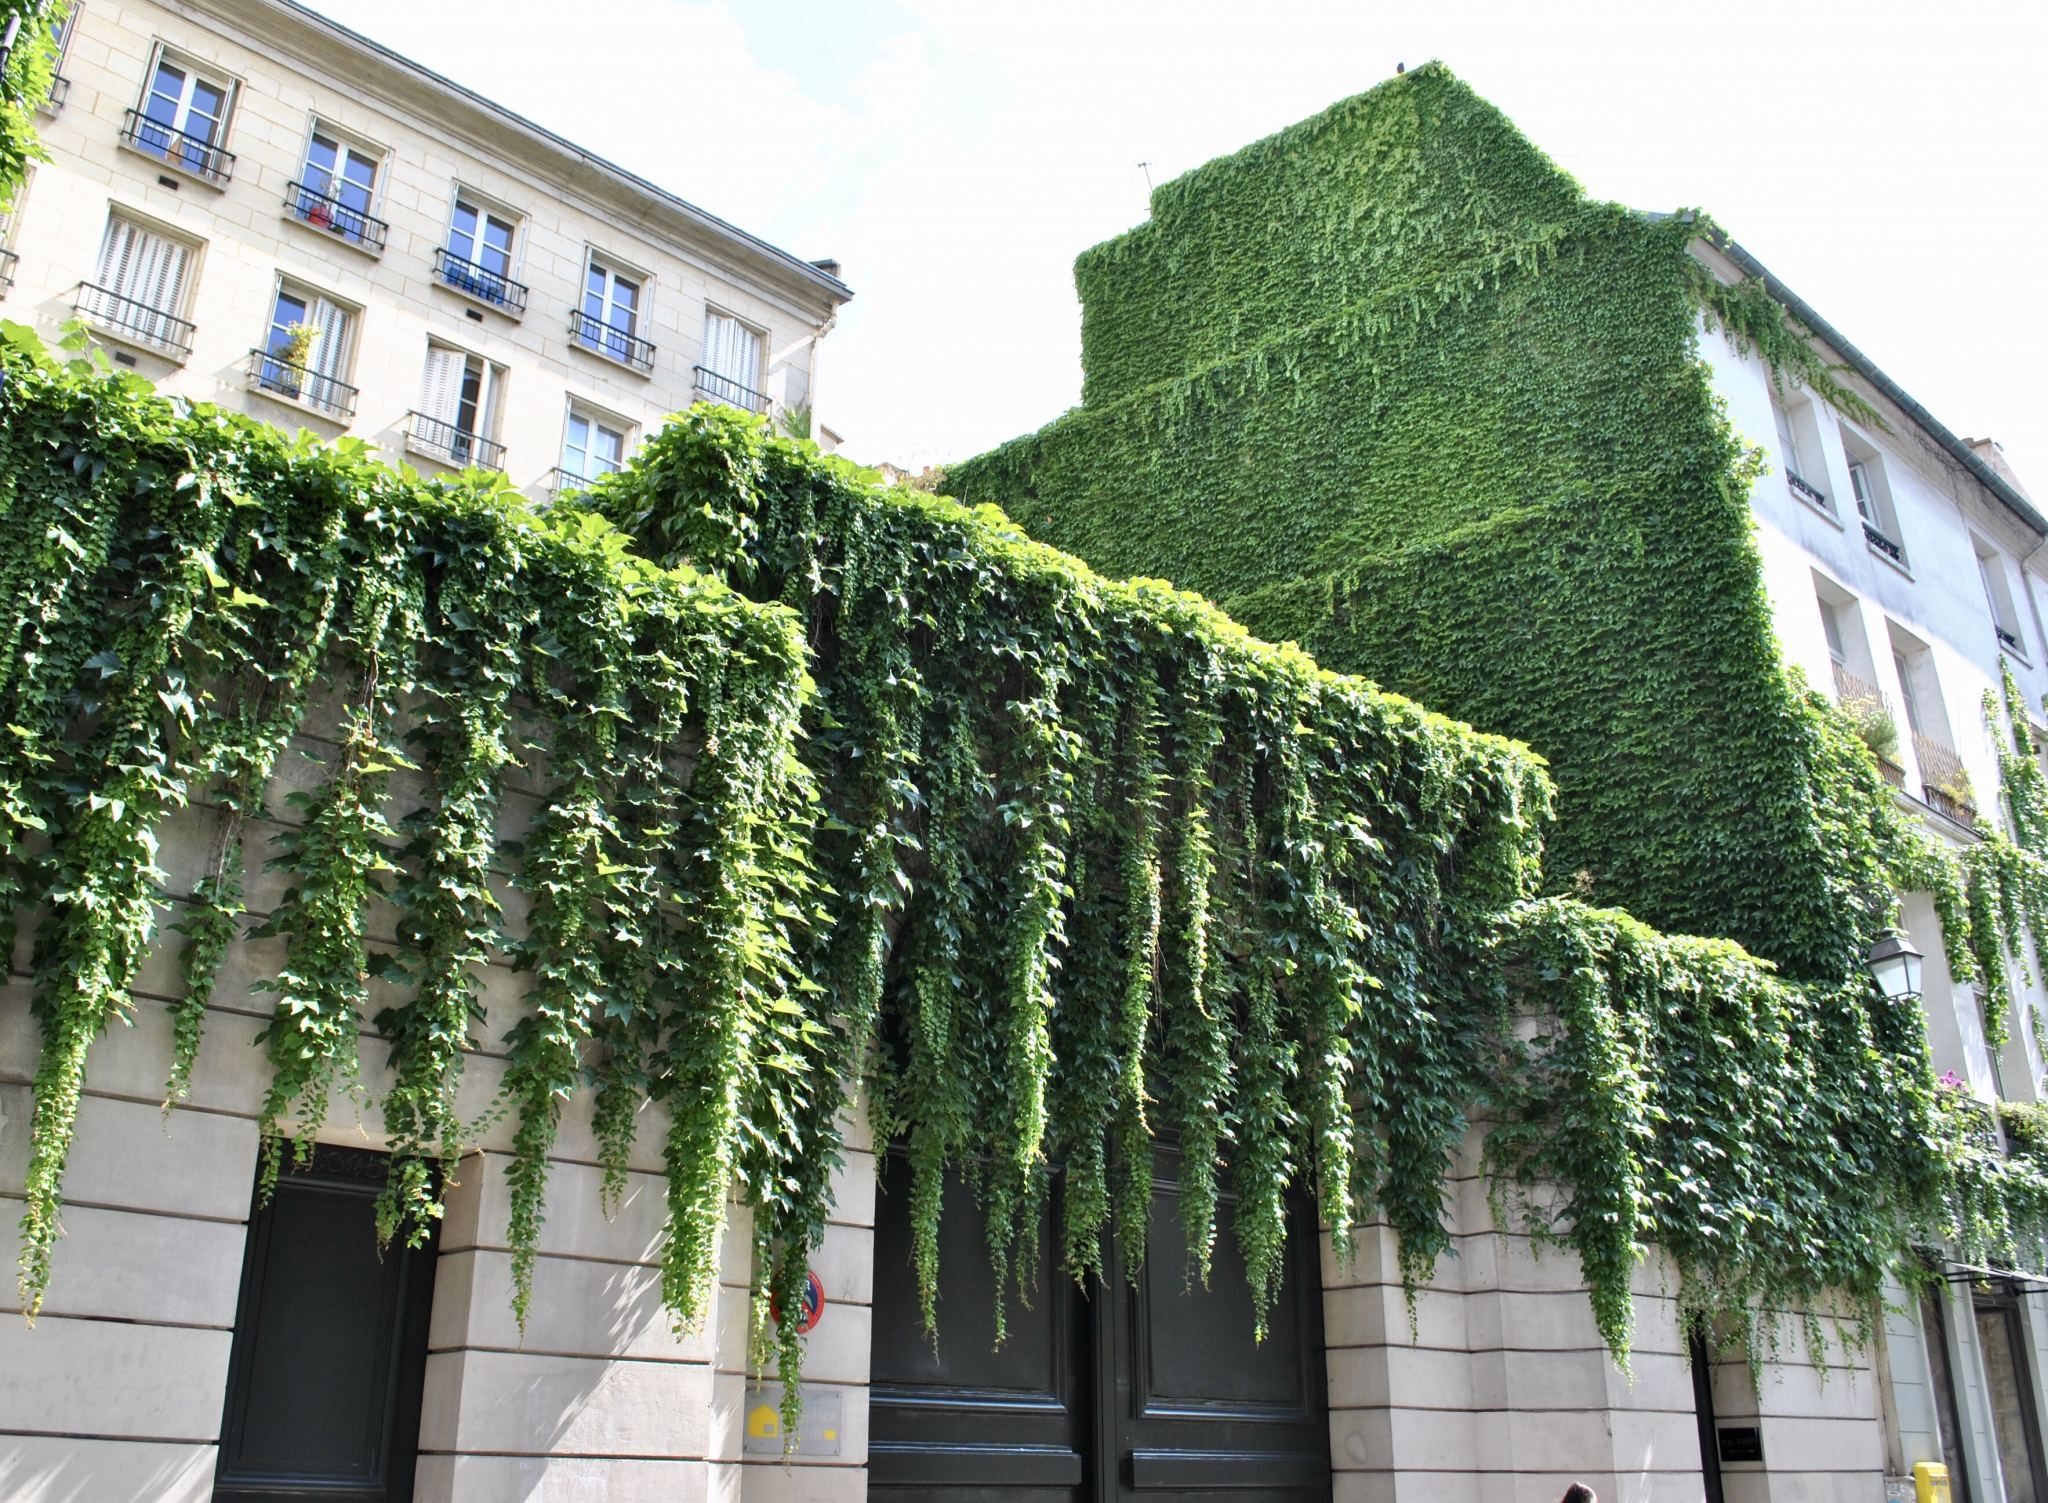 Ivy clad buildings